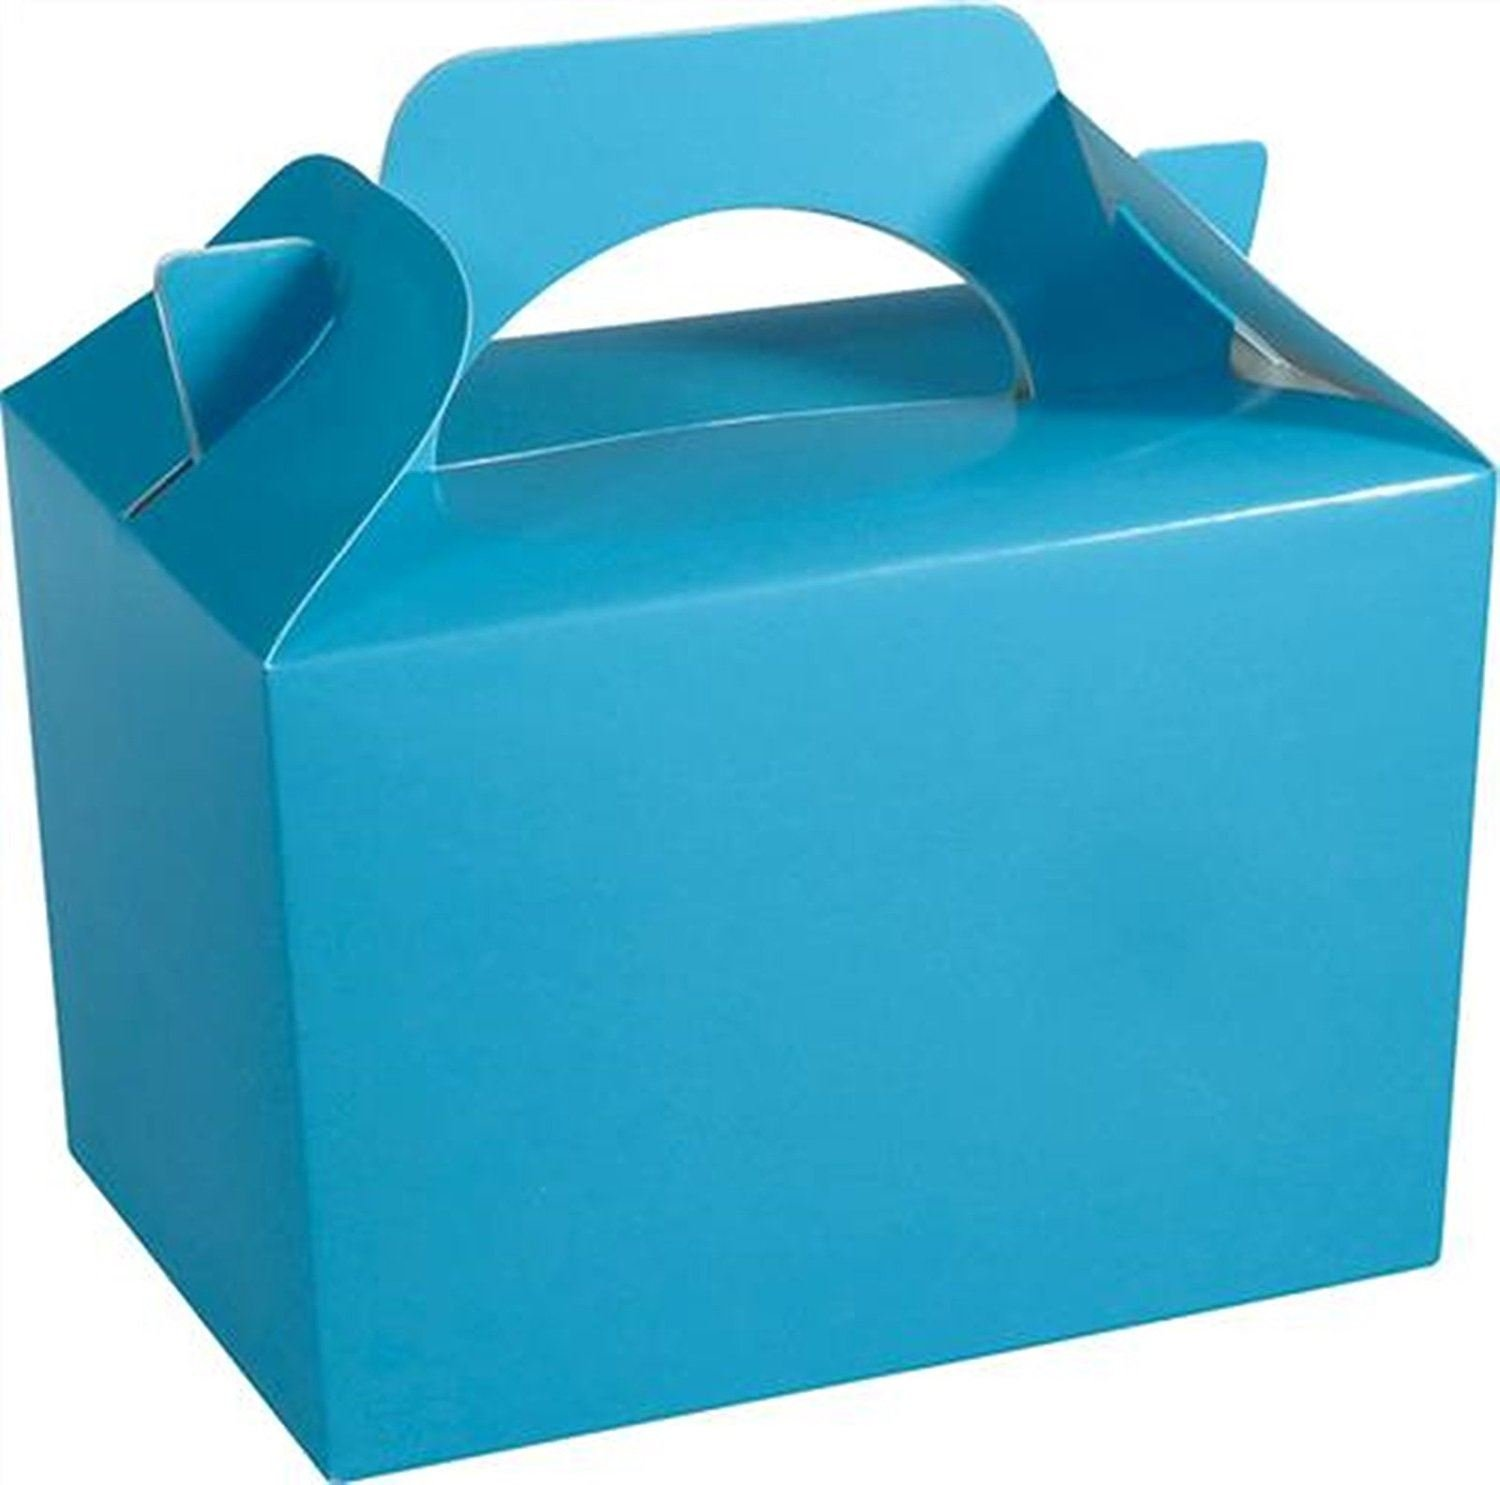 10 x BABY BLUE Kid Childrens Plain Activity Food Loot Favour Birthday Party Bag Gift Box Wedding Toy Christmas Concept4u